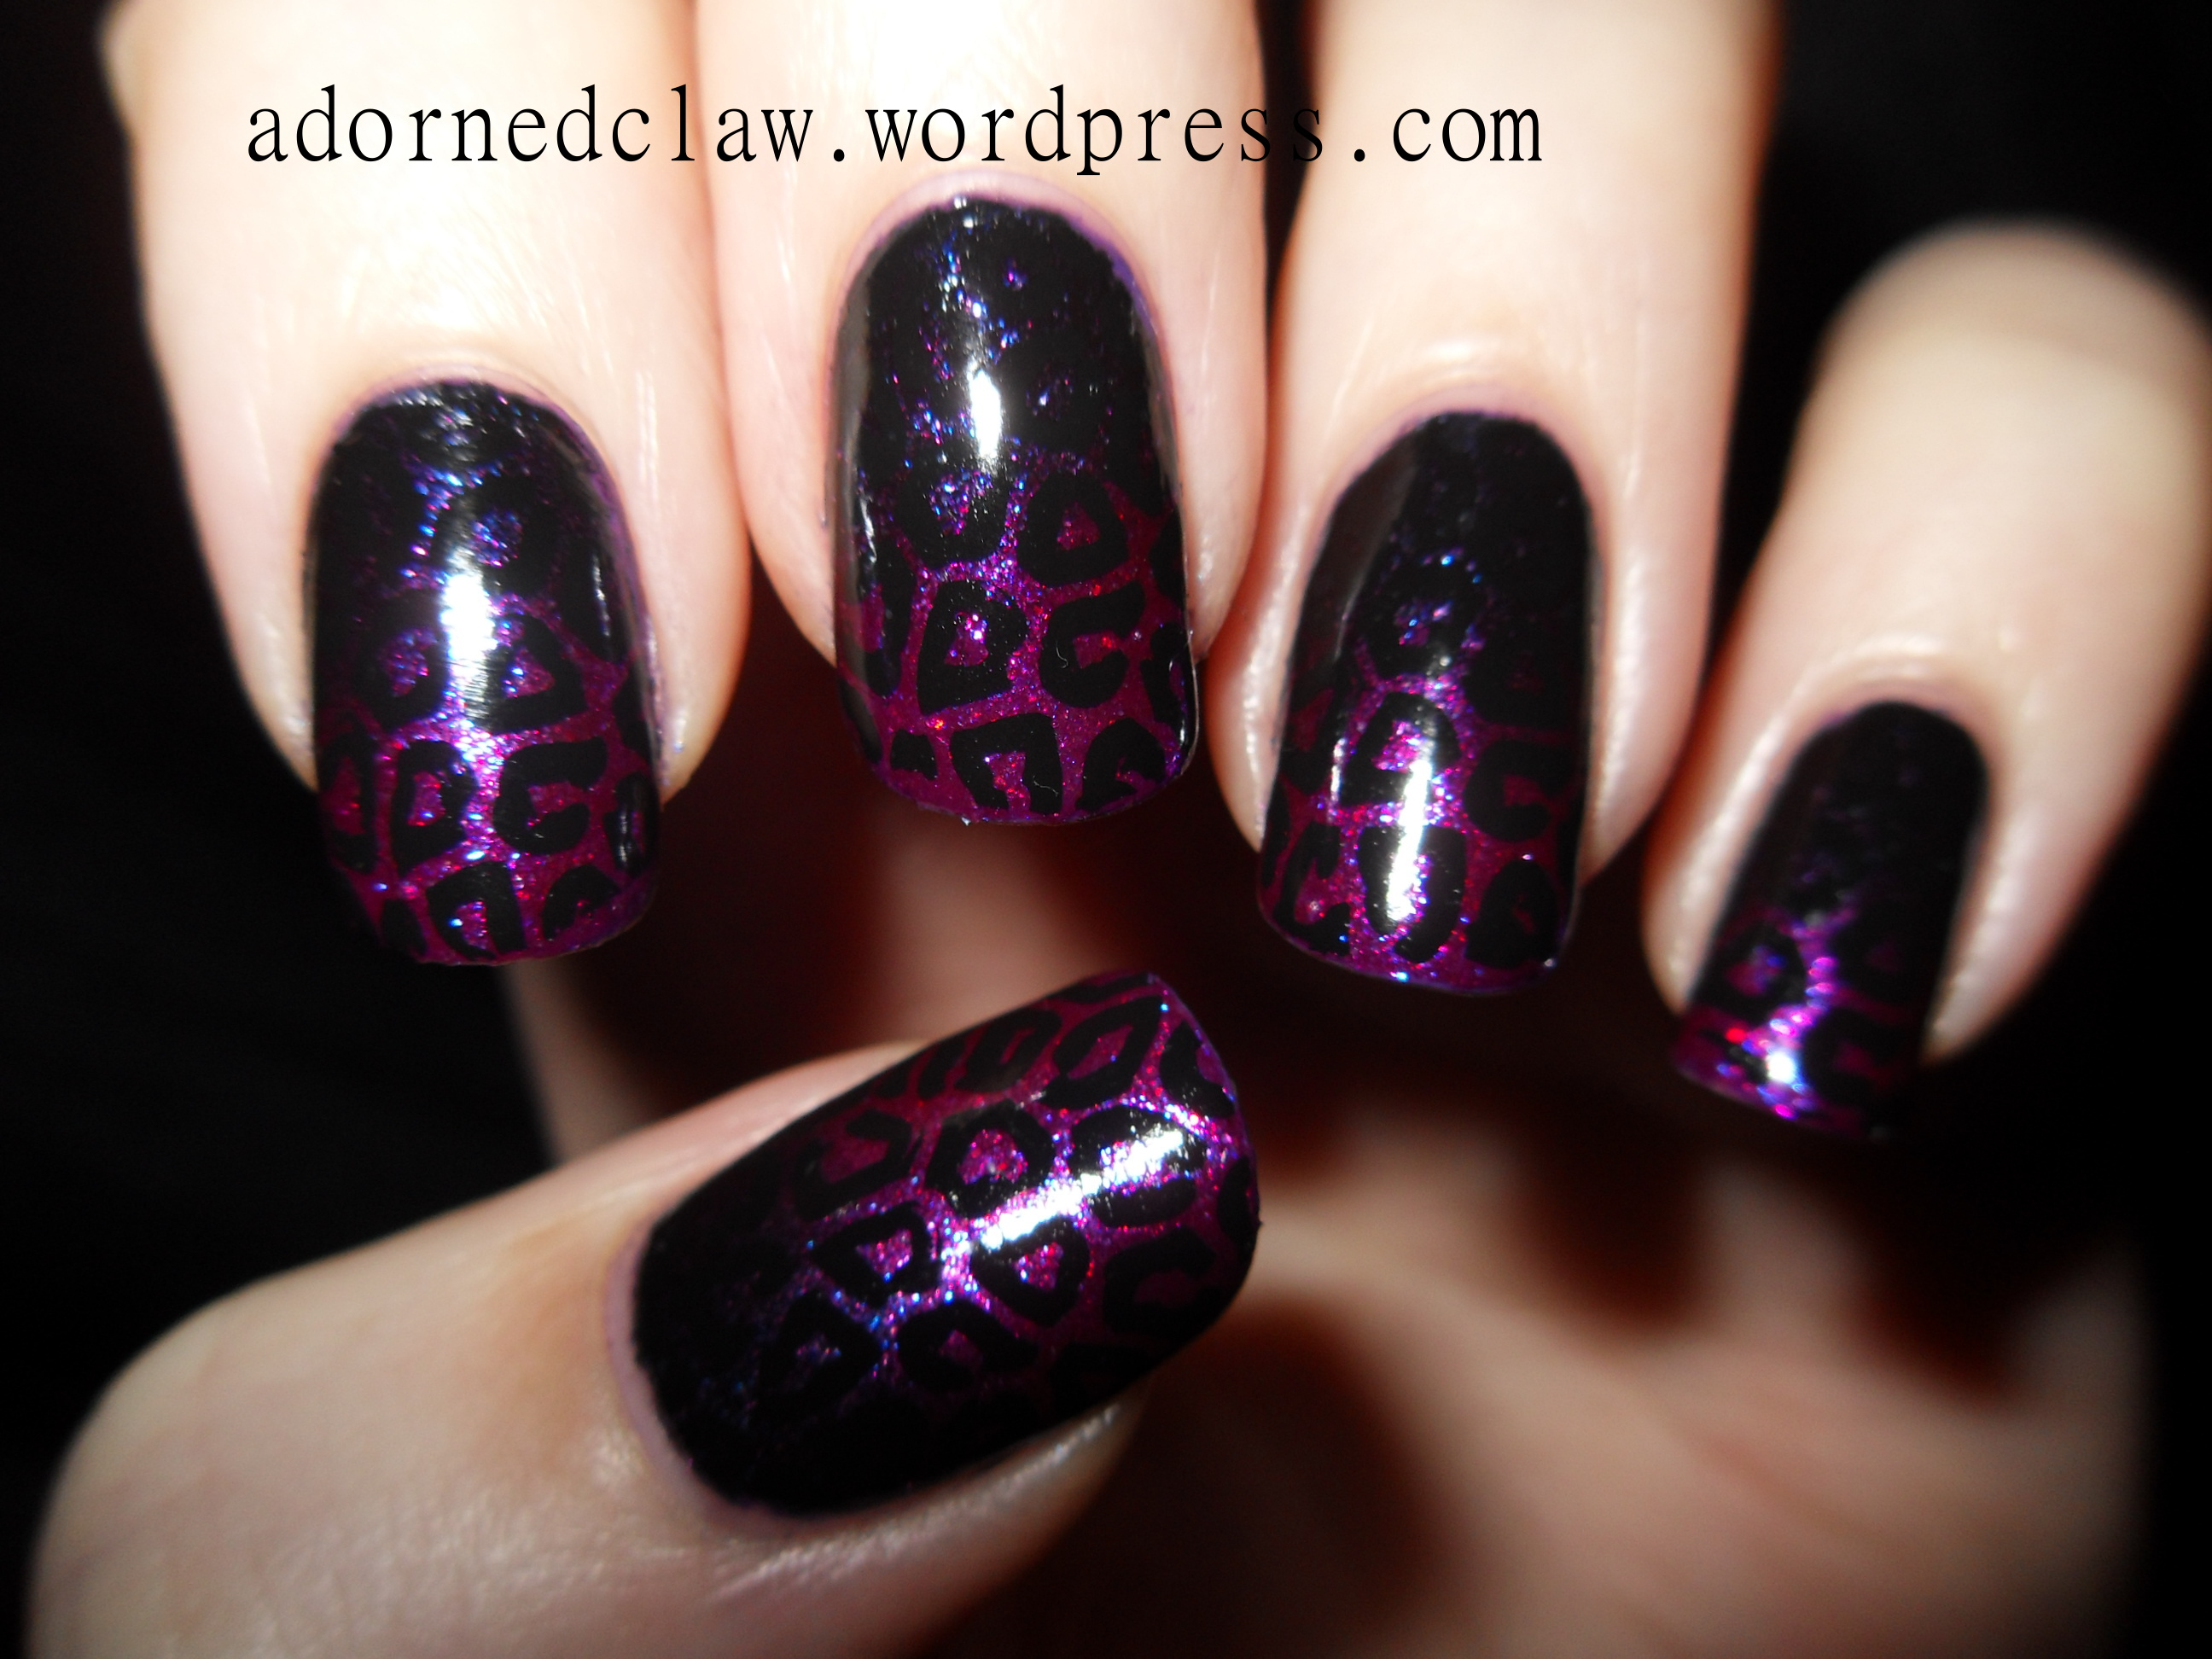 Purple and Pink Glitter Leopard Nail Art | The Adorned Claw